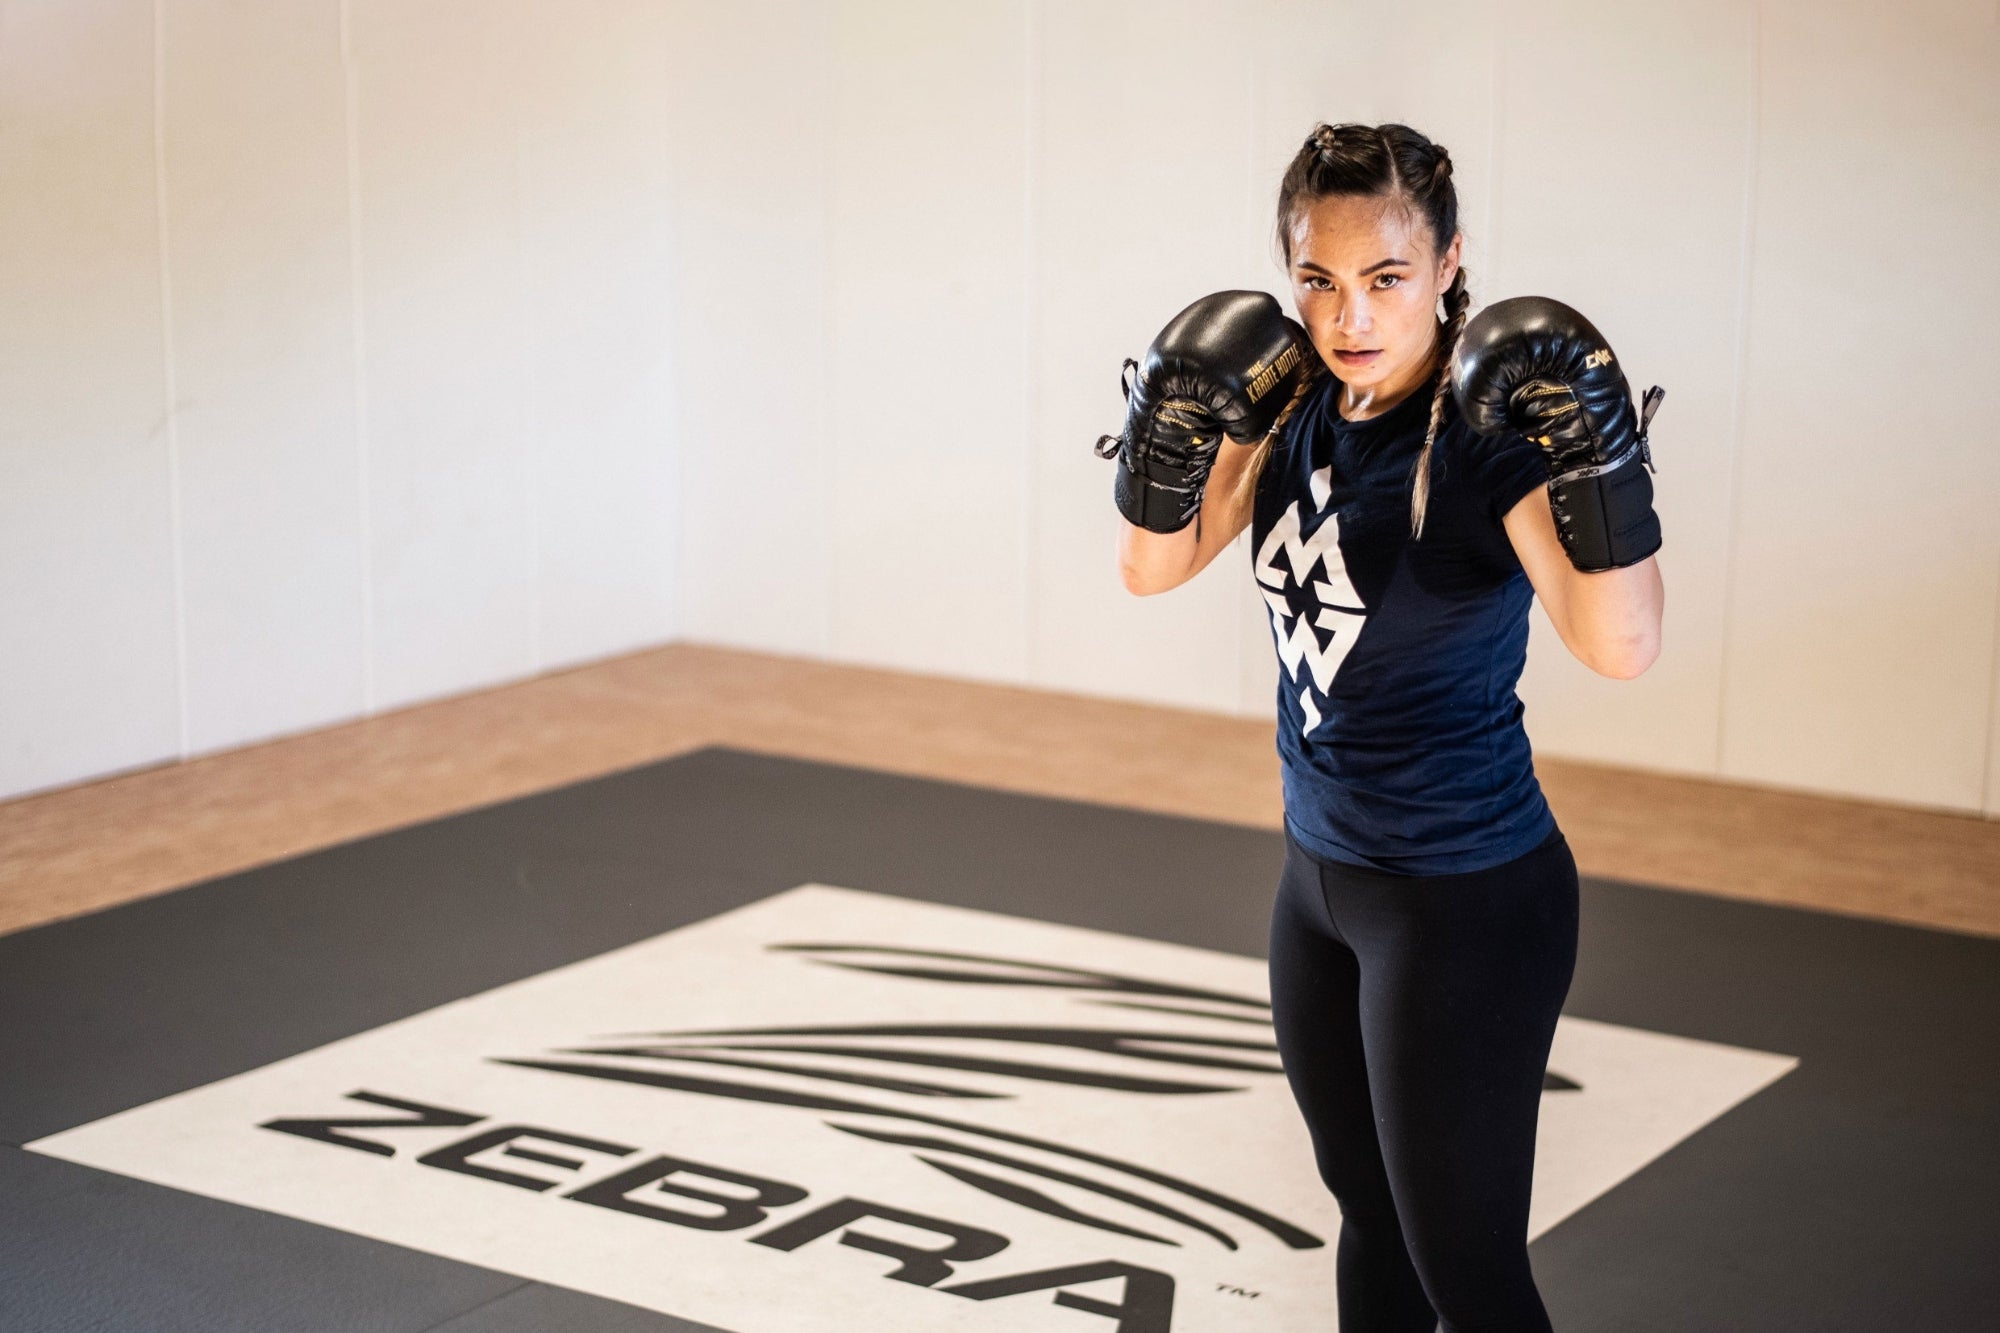 4 Rounds With UFC Women's Fighter Michelle Waterson